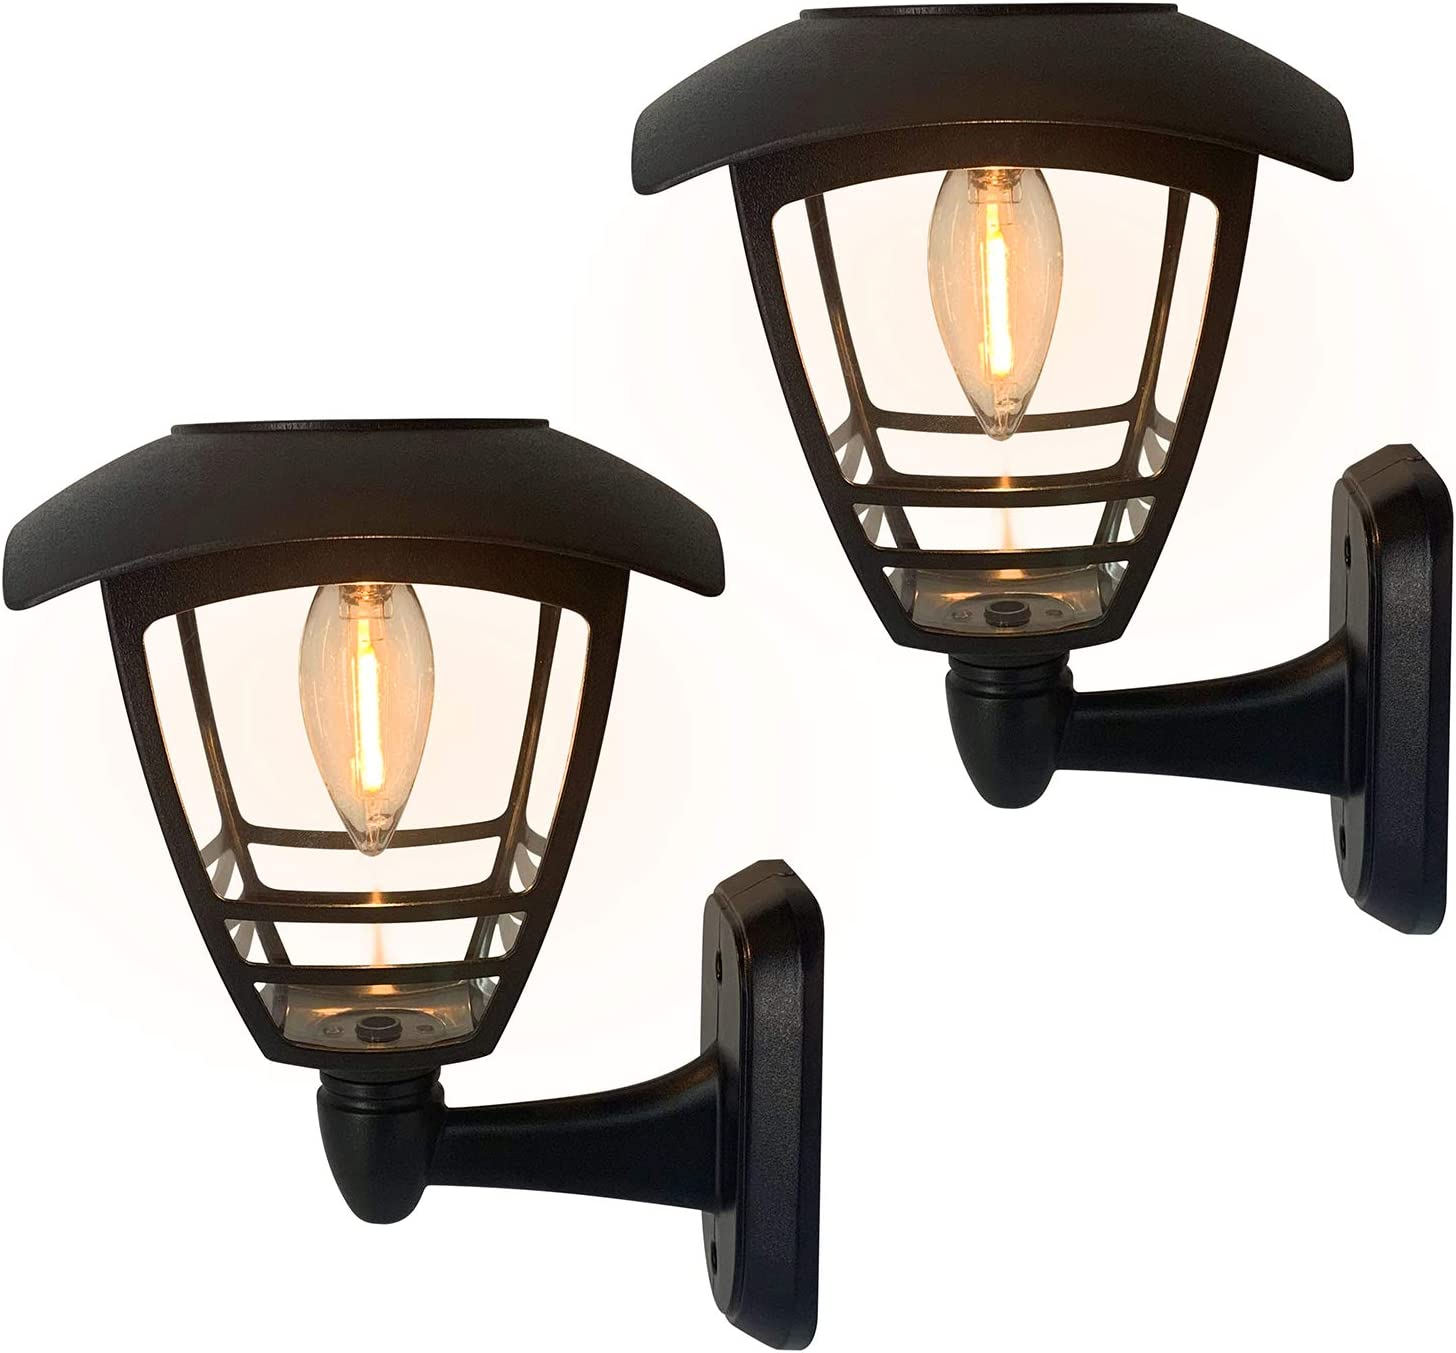 2 Pack Solar Wall Lantern Lights Outdoor Waterproof Black Sun Powered Wall Light Fixtures Sturdy Plastic Led Wall Lantern Clear Warm White Lighting For Yard Front Porch Garage And Garden Home